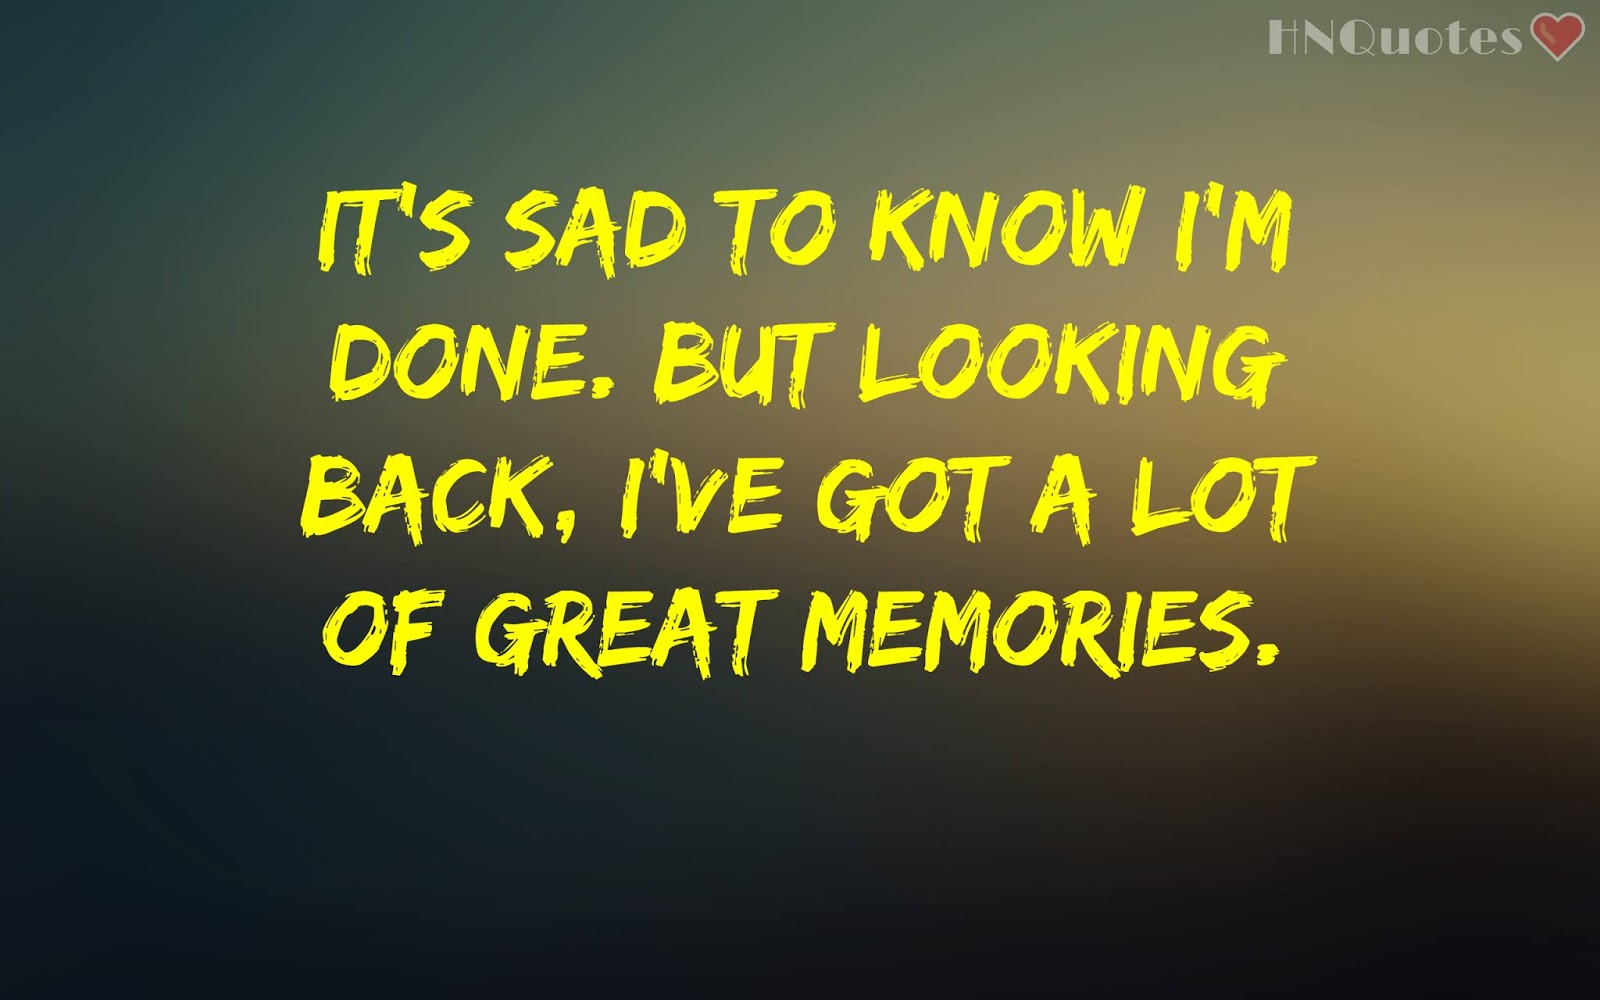 Sad-&-Emotional-Quotes-on-Life-49-Best-Emotional-Quotes[HNQuotes]